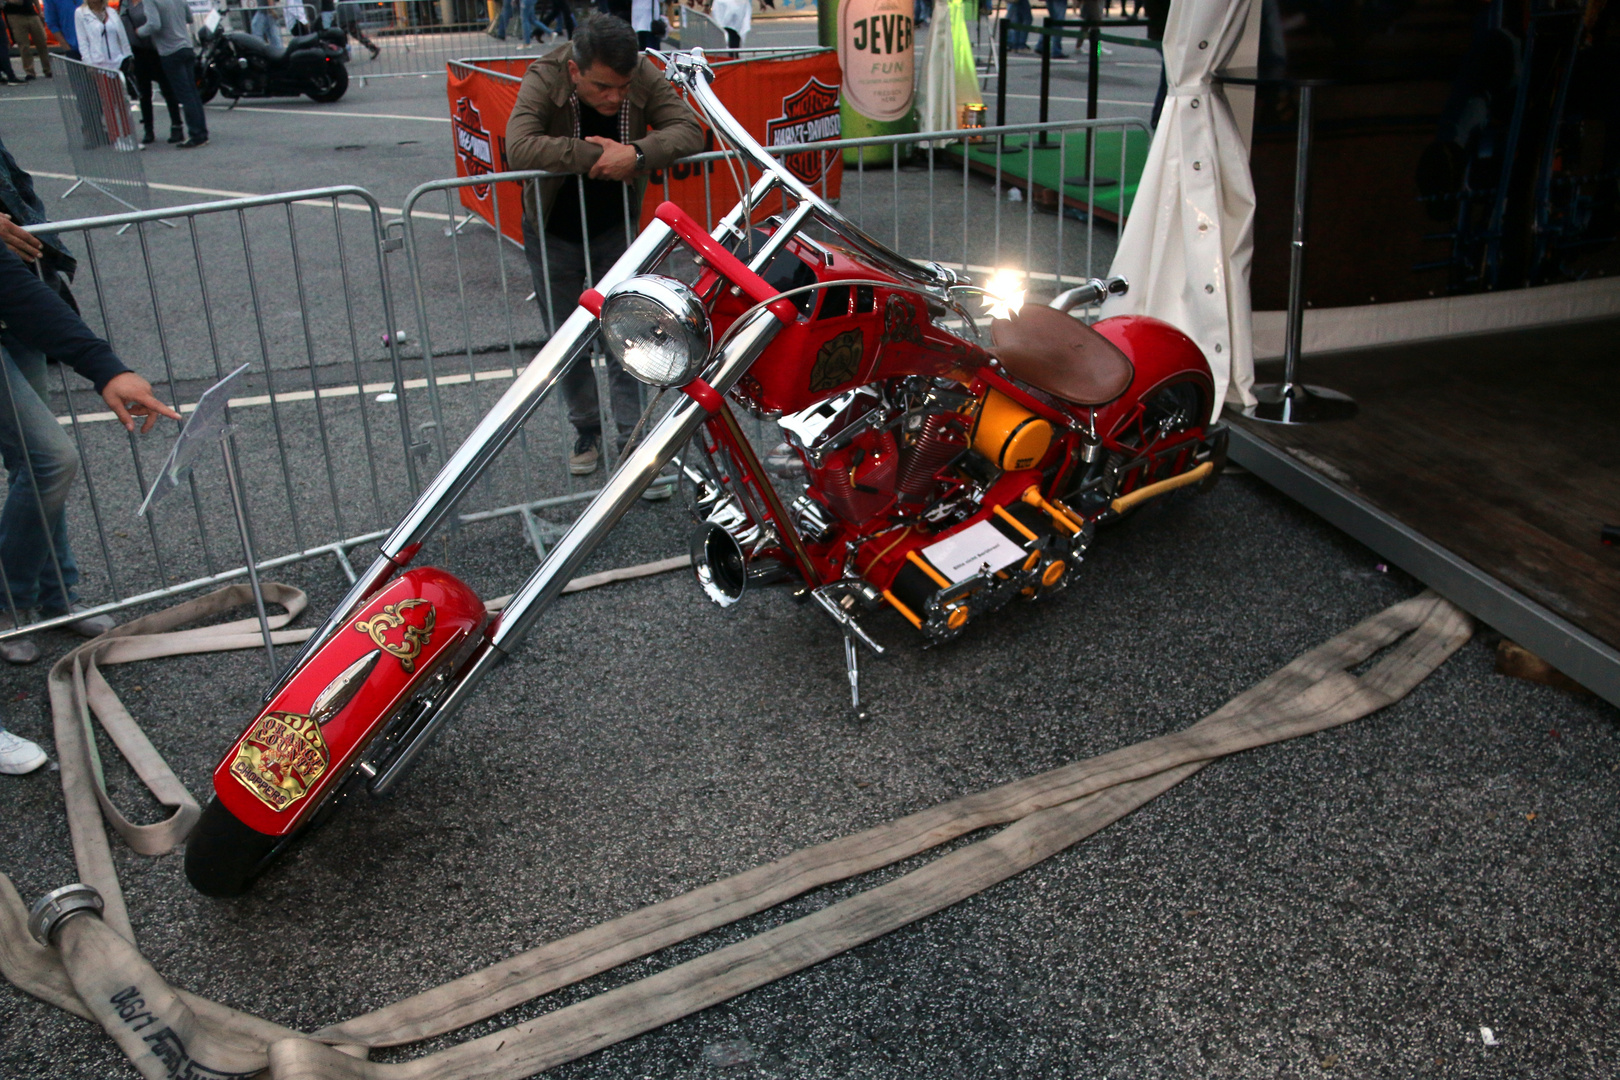 OCC Fire Bike